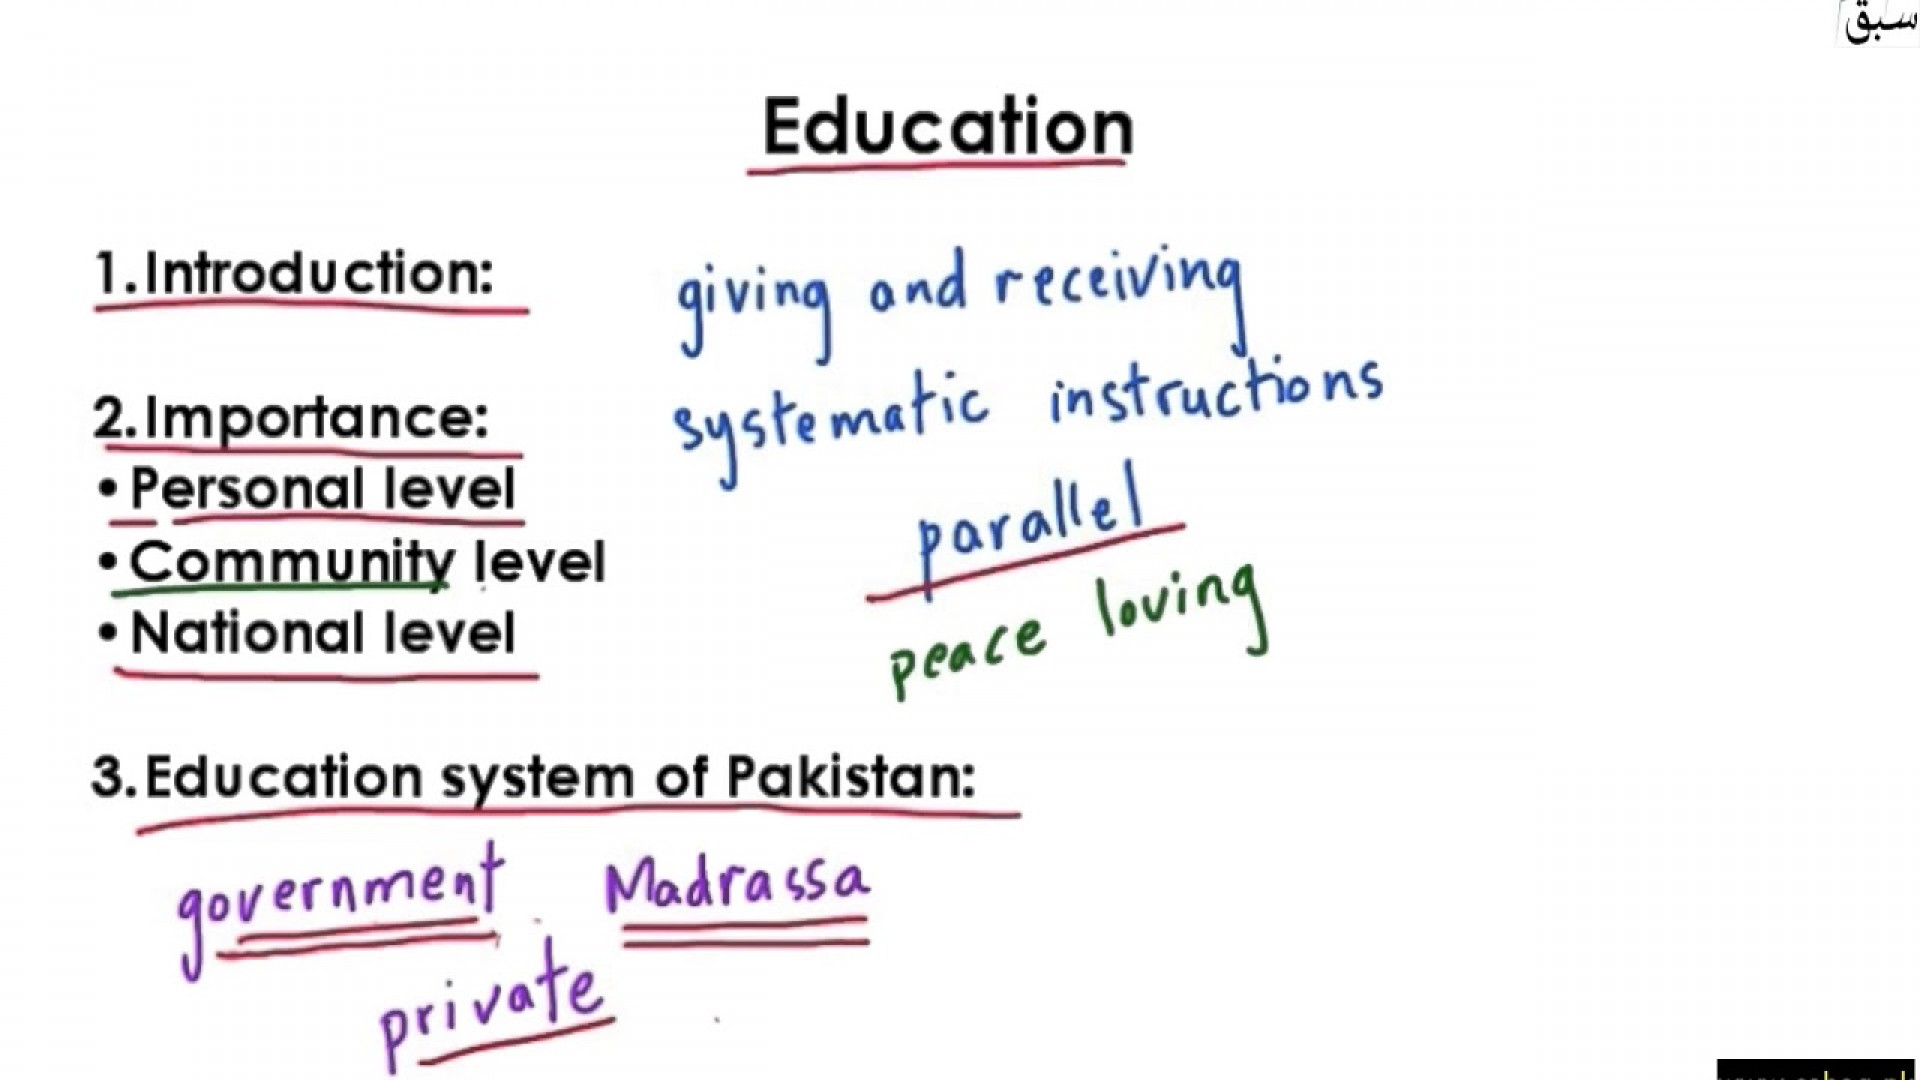 001 Research Paper Maxresdefault Essay On Education System In Pakistan With Impressive Outline Our 1920